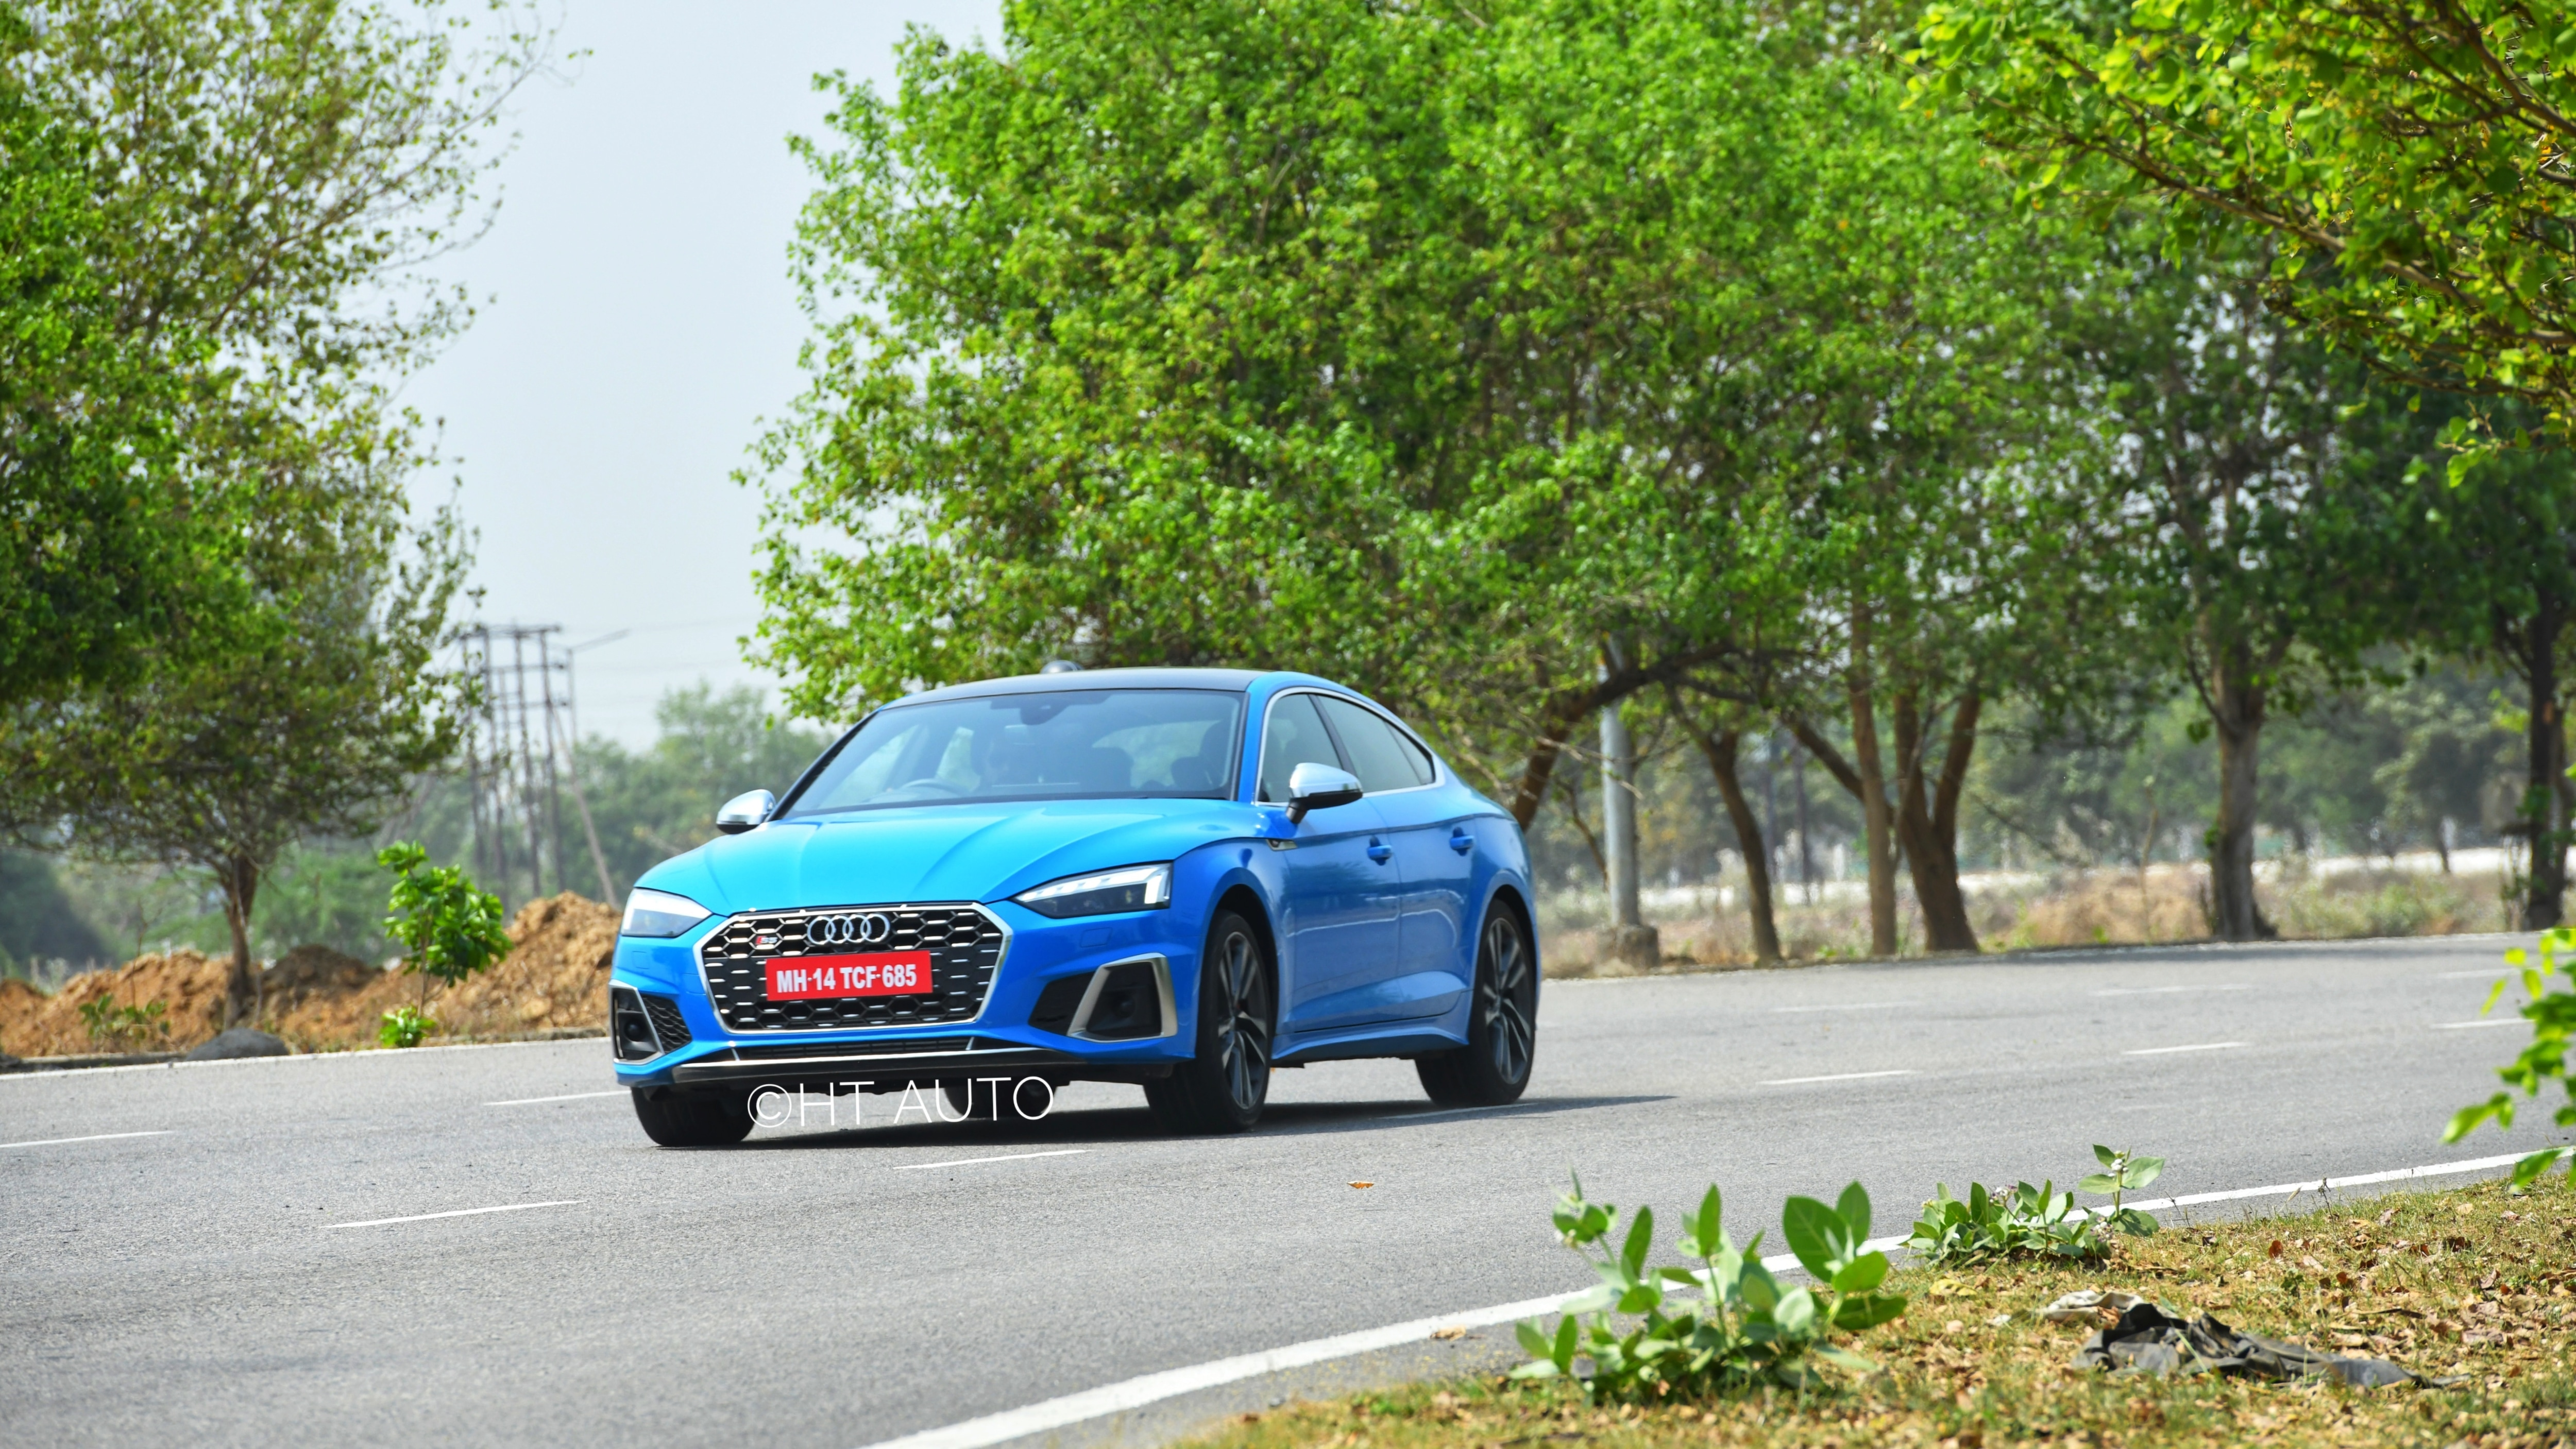 Audi wants to be quicker in bringing its products to India after their respective global launch. But does the S5 Sportback deserve local assembly?